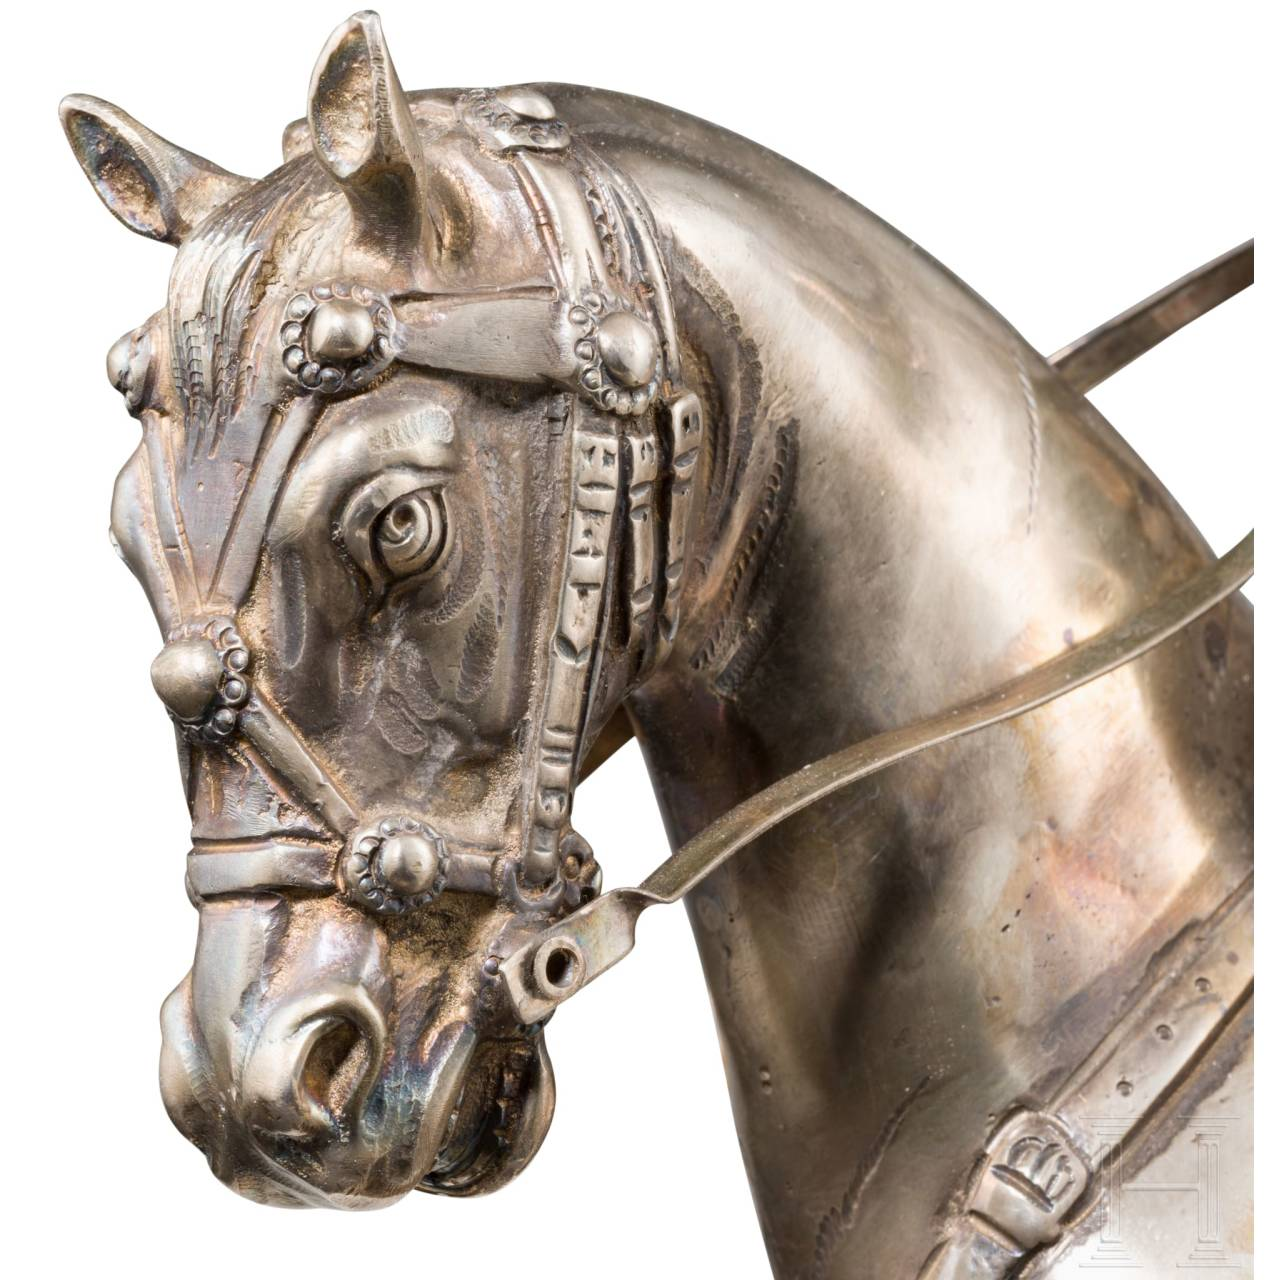 A German silver statuette of a high-ranking cavalry officer, 19th century